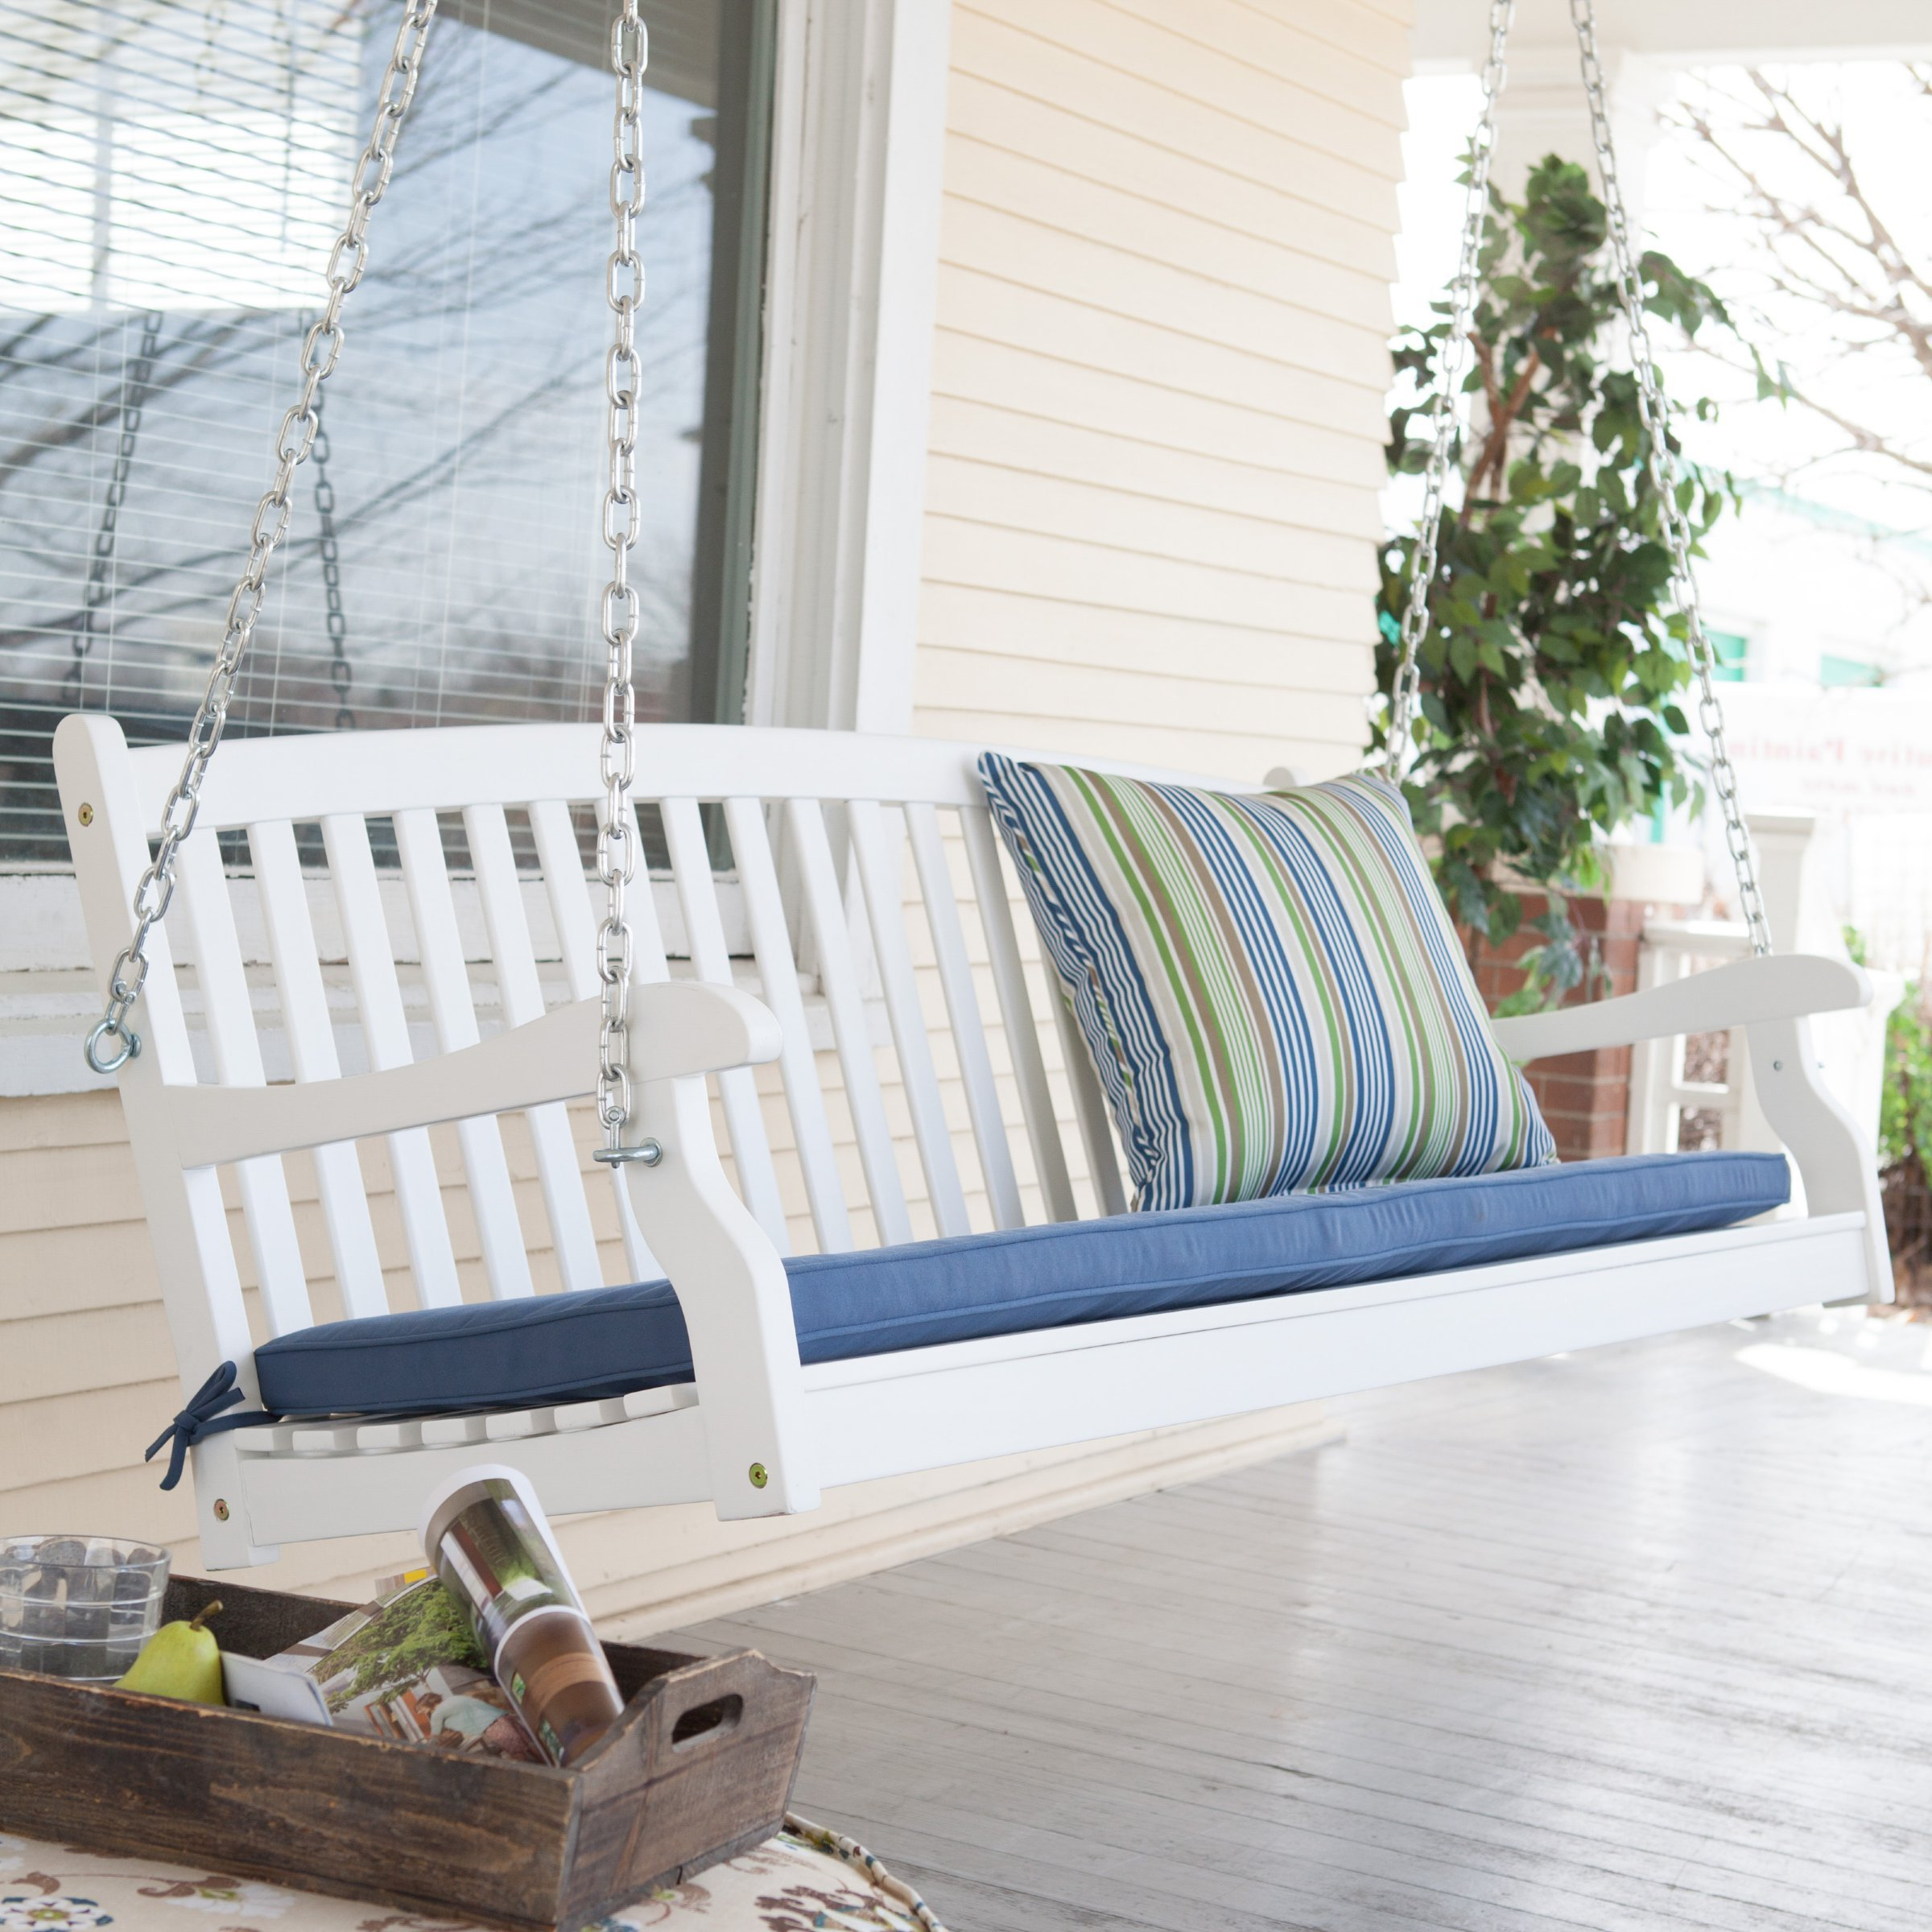 Cheap Porch Swing White, Find Porch Swing White Deals On Intended For Most Up To Date Contoured Classic Porch Swings (Gallery 9 of 30)